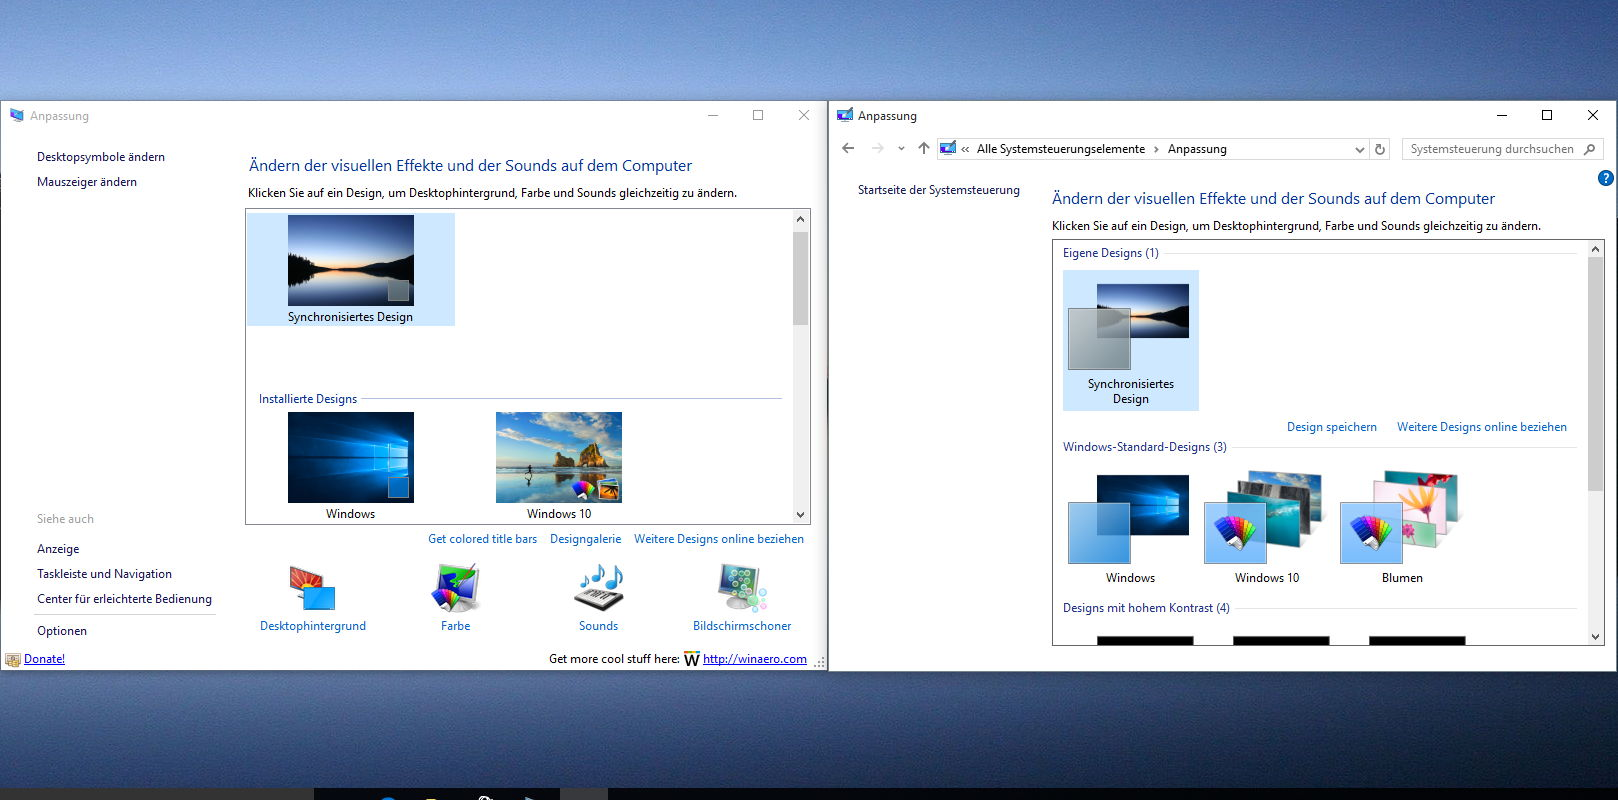 Personalization panel for windows 10 die anpassung for Window location